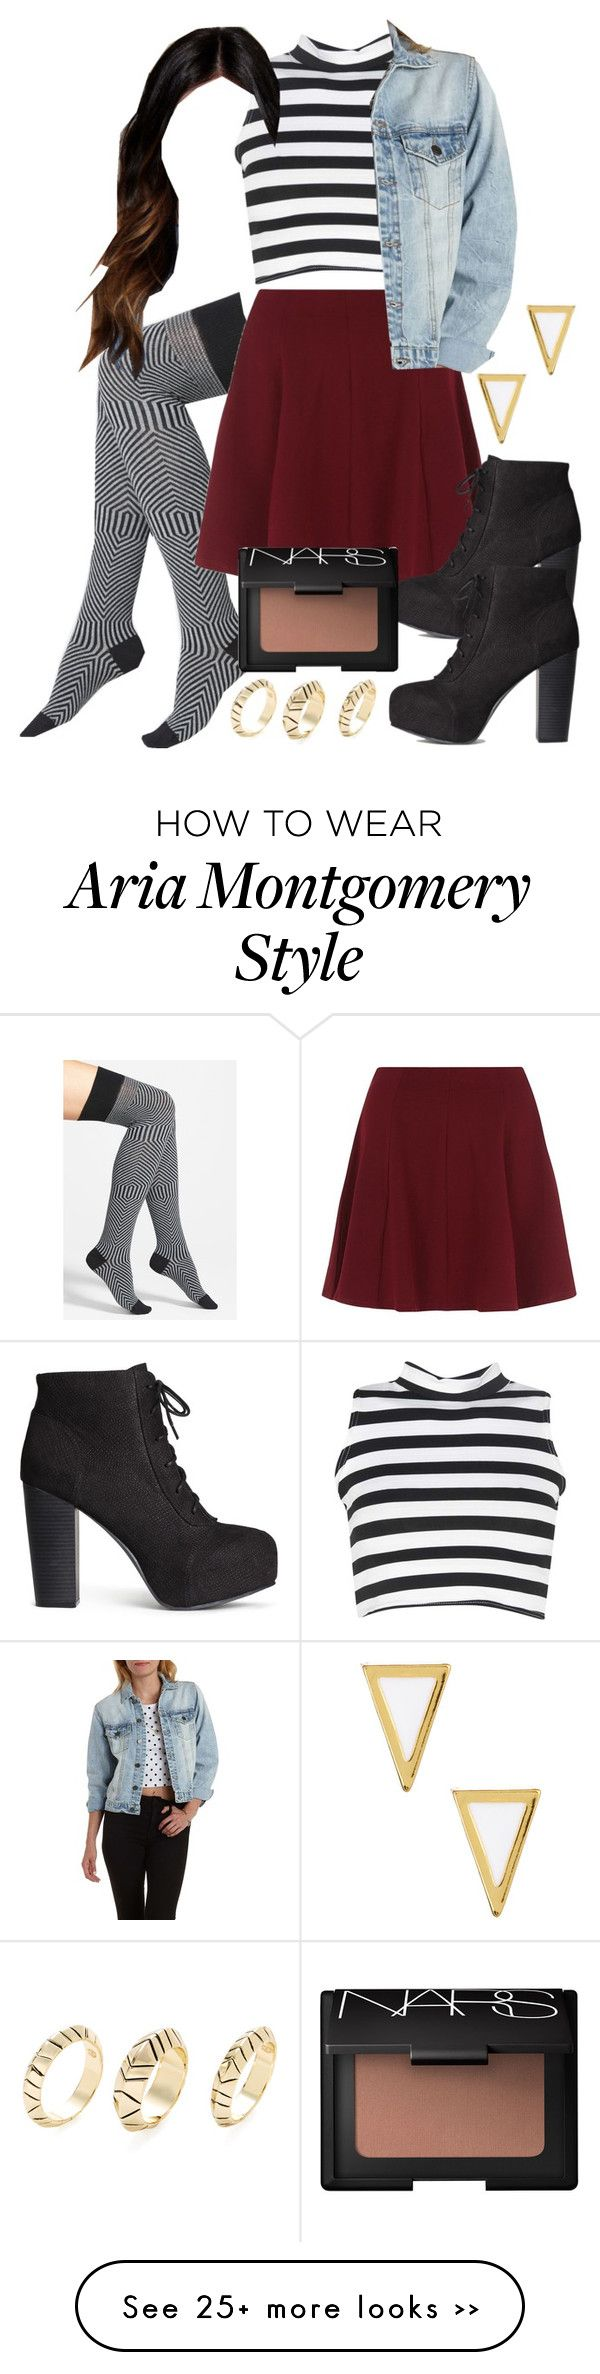 """Aria Montgomery inspired outfit with requested socks"" by liarsstyle on Polyvore"